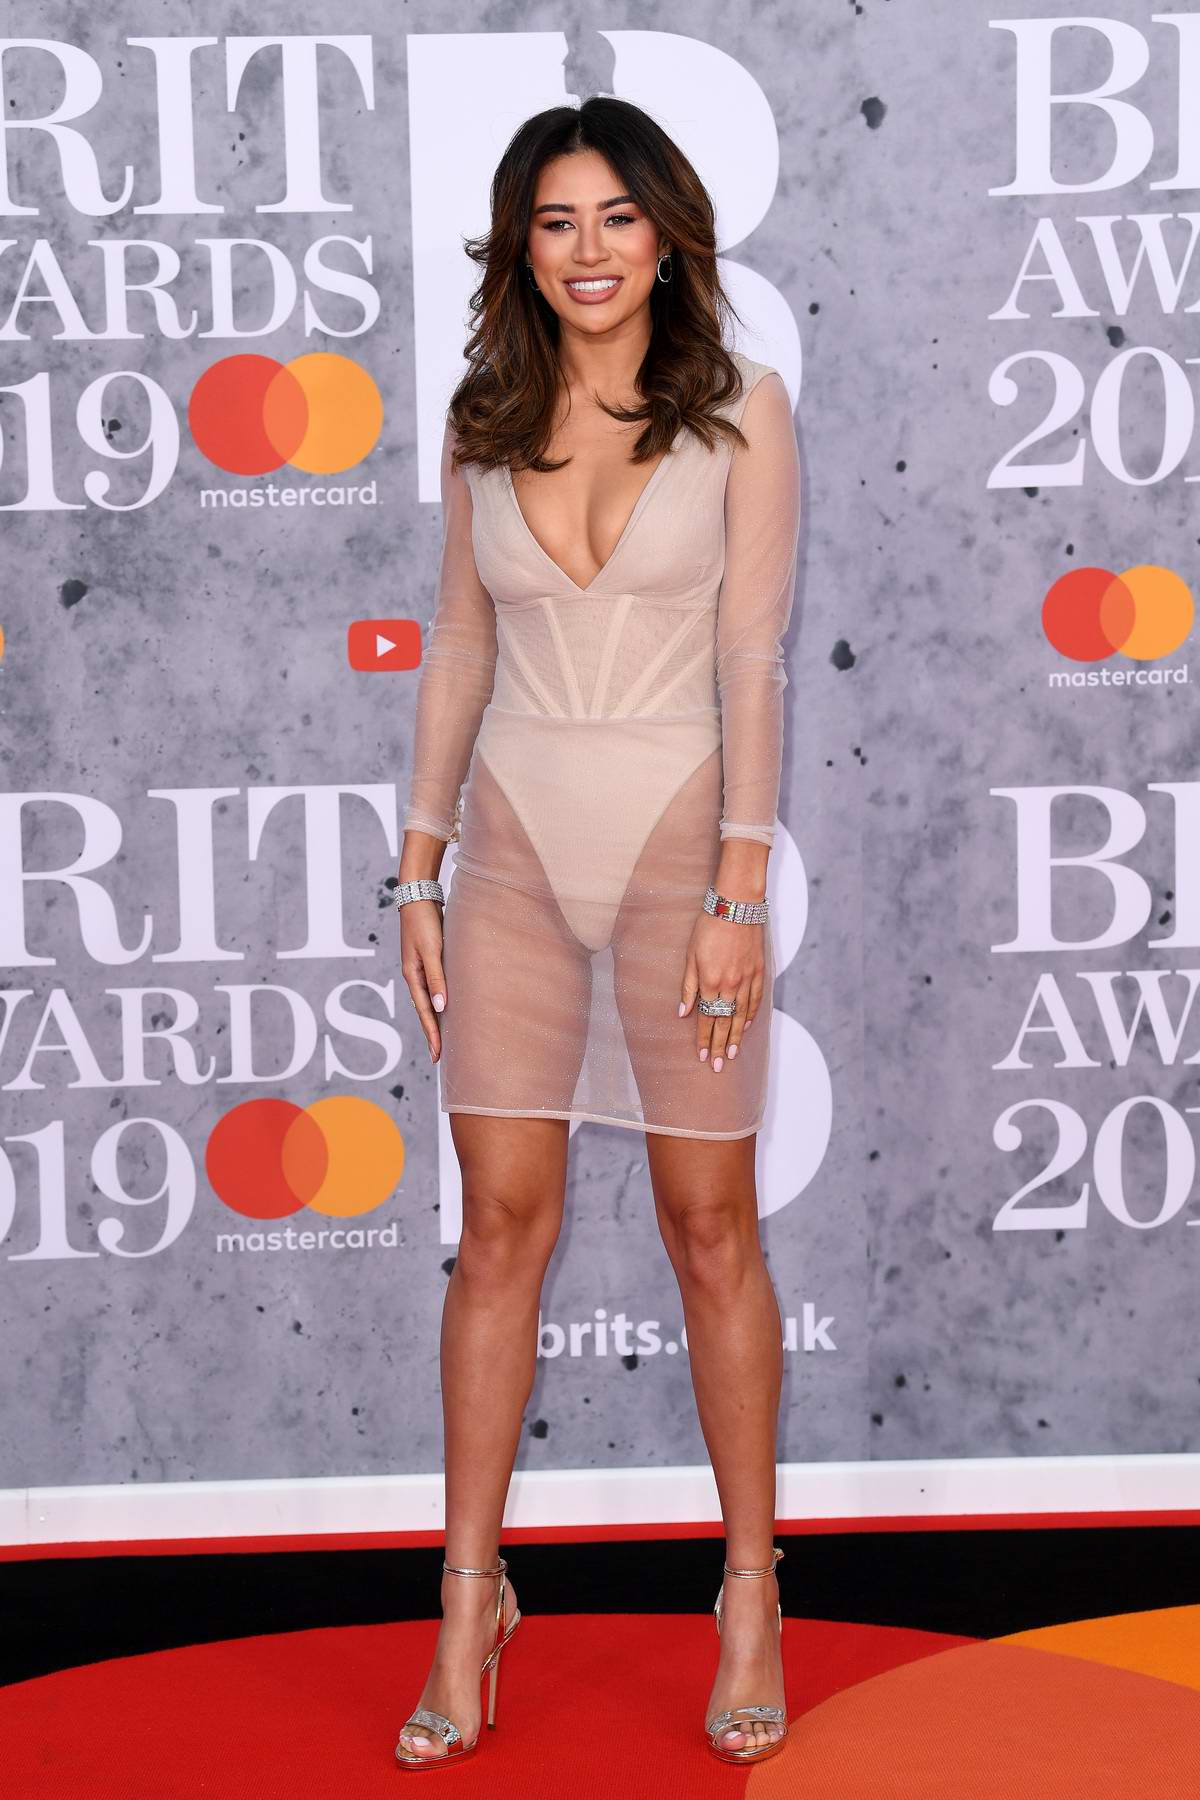 Montana Brown attends The BRIT Awards 2019 held at The O2 Arena in London, UK